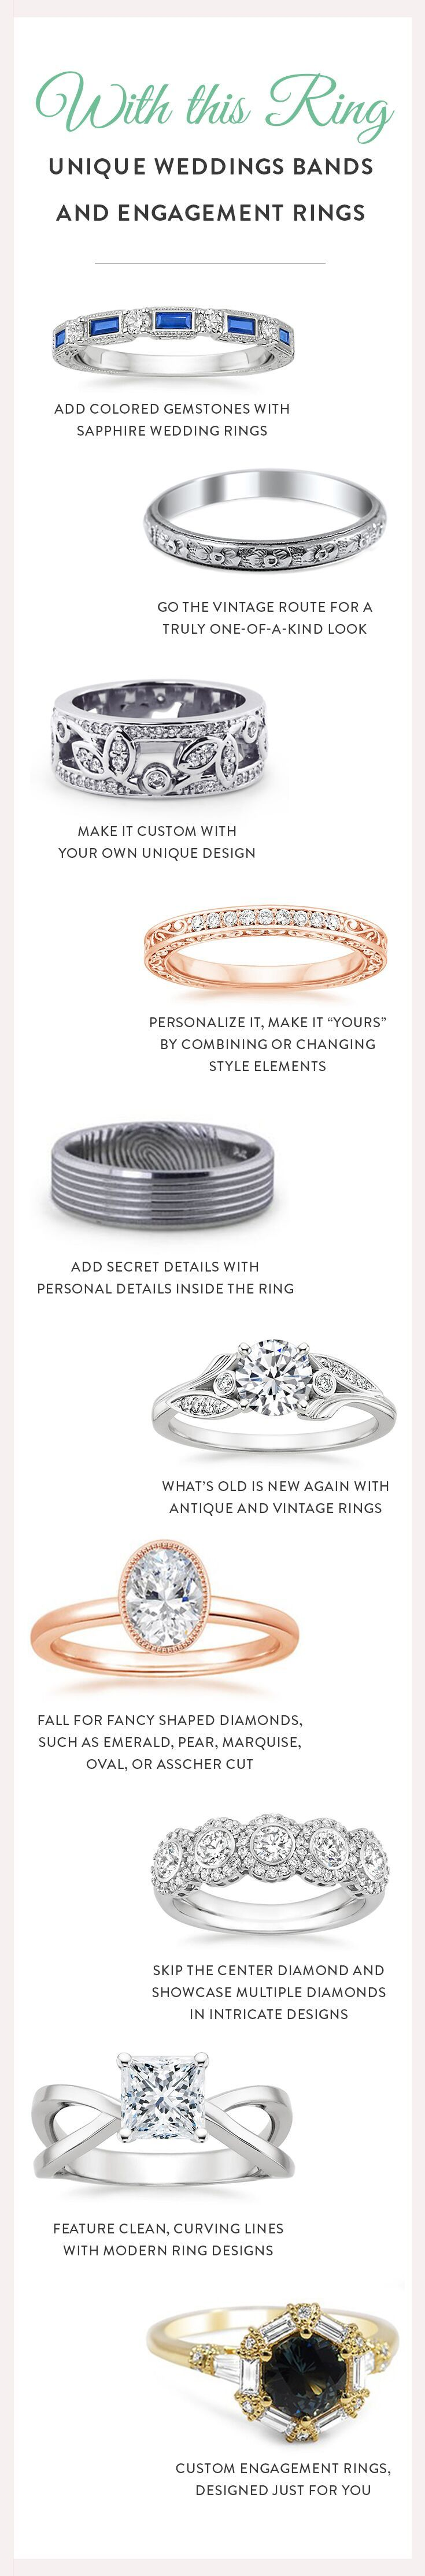 You can make a one-of-a-kind choice that is truly everlasting by selecting a unique wedding ring (and a unique engagement ring, if you don't already have one). While a wedding only lasts for one day, your marriage—and a unique engagement ring or wedding band—will last a lifetime.  Here are a few ideas about how to make your rings as special as you are.